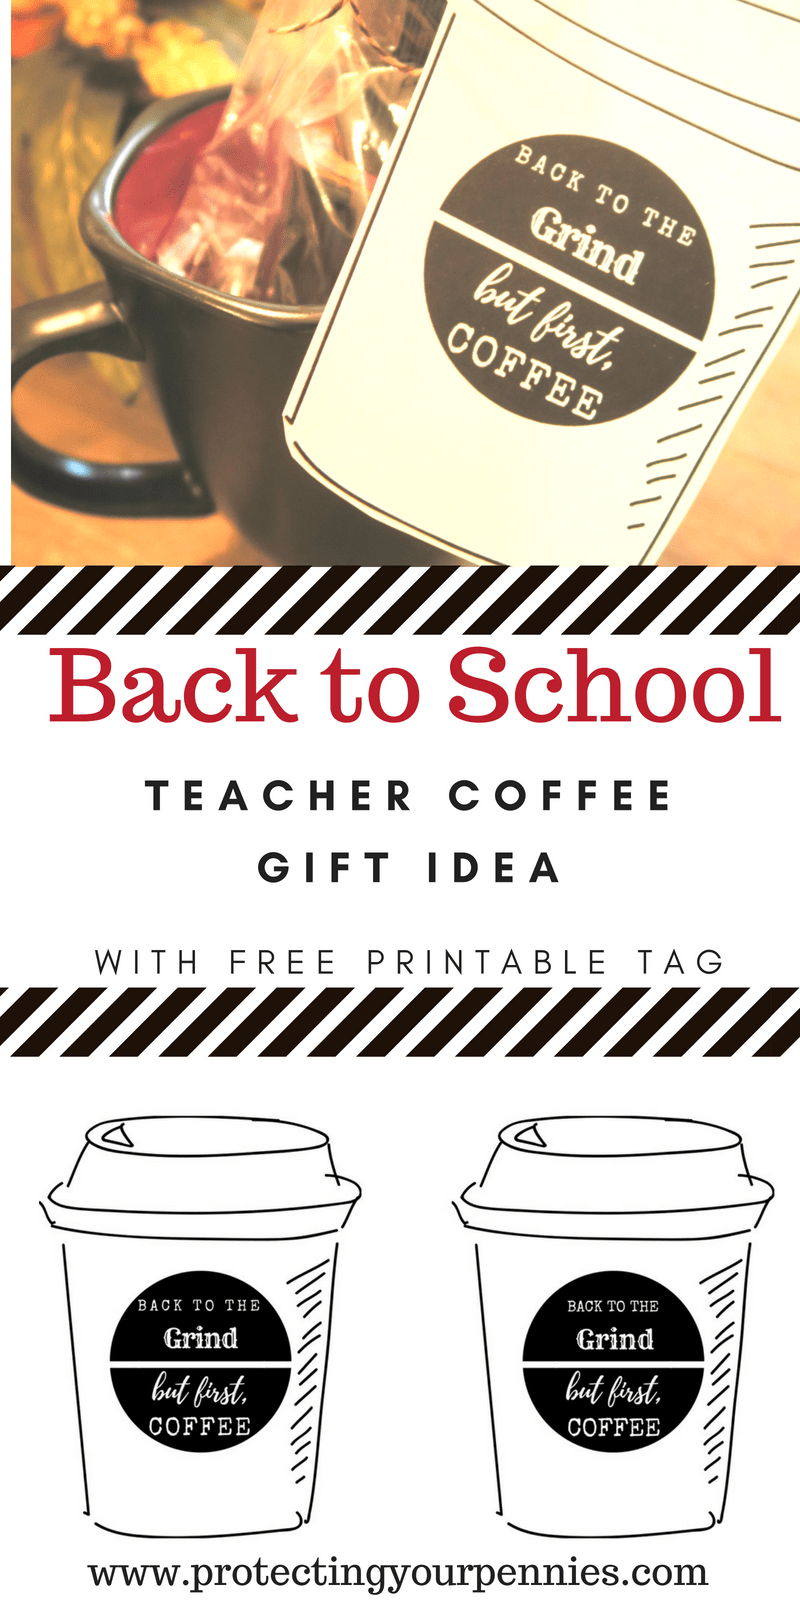 Back to School Teacher Coffee Idea with Tag and Gift Idea